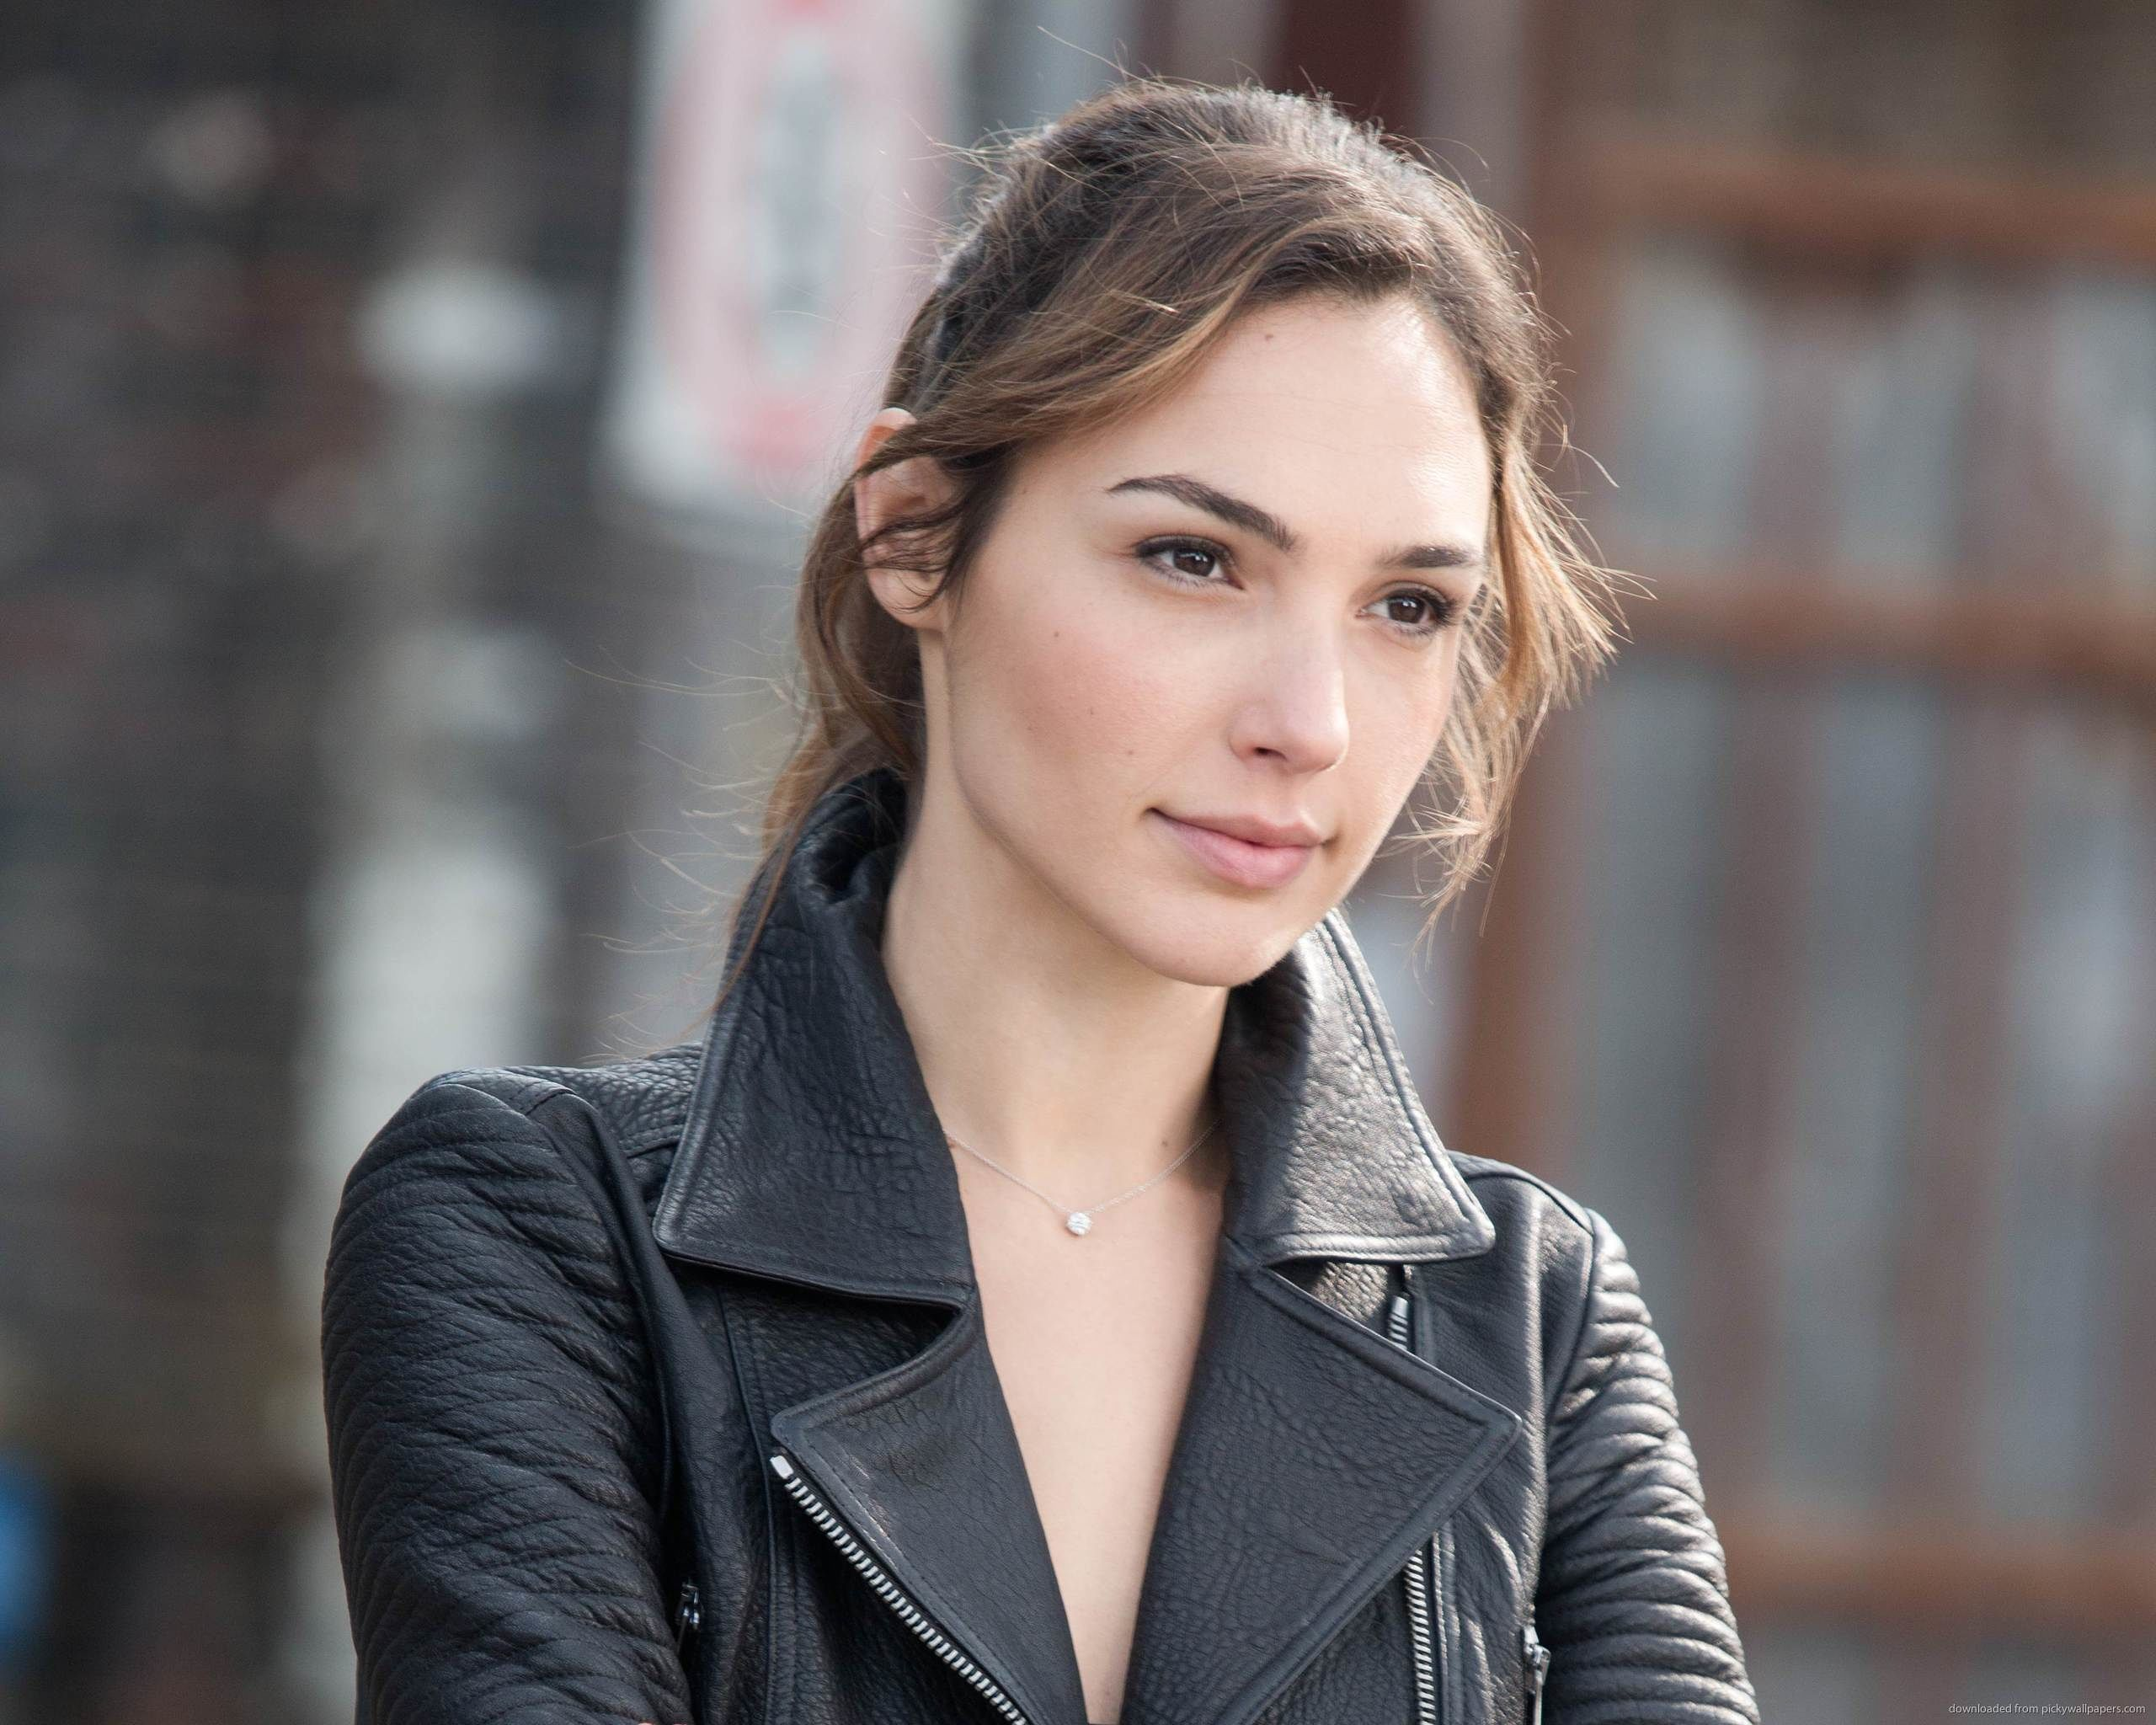 Gal Gadot Hd Wallpaper Posted By Ryan Sellers